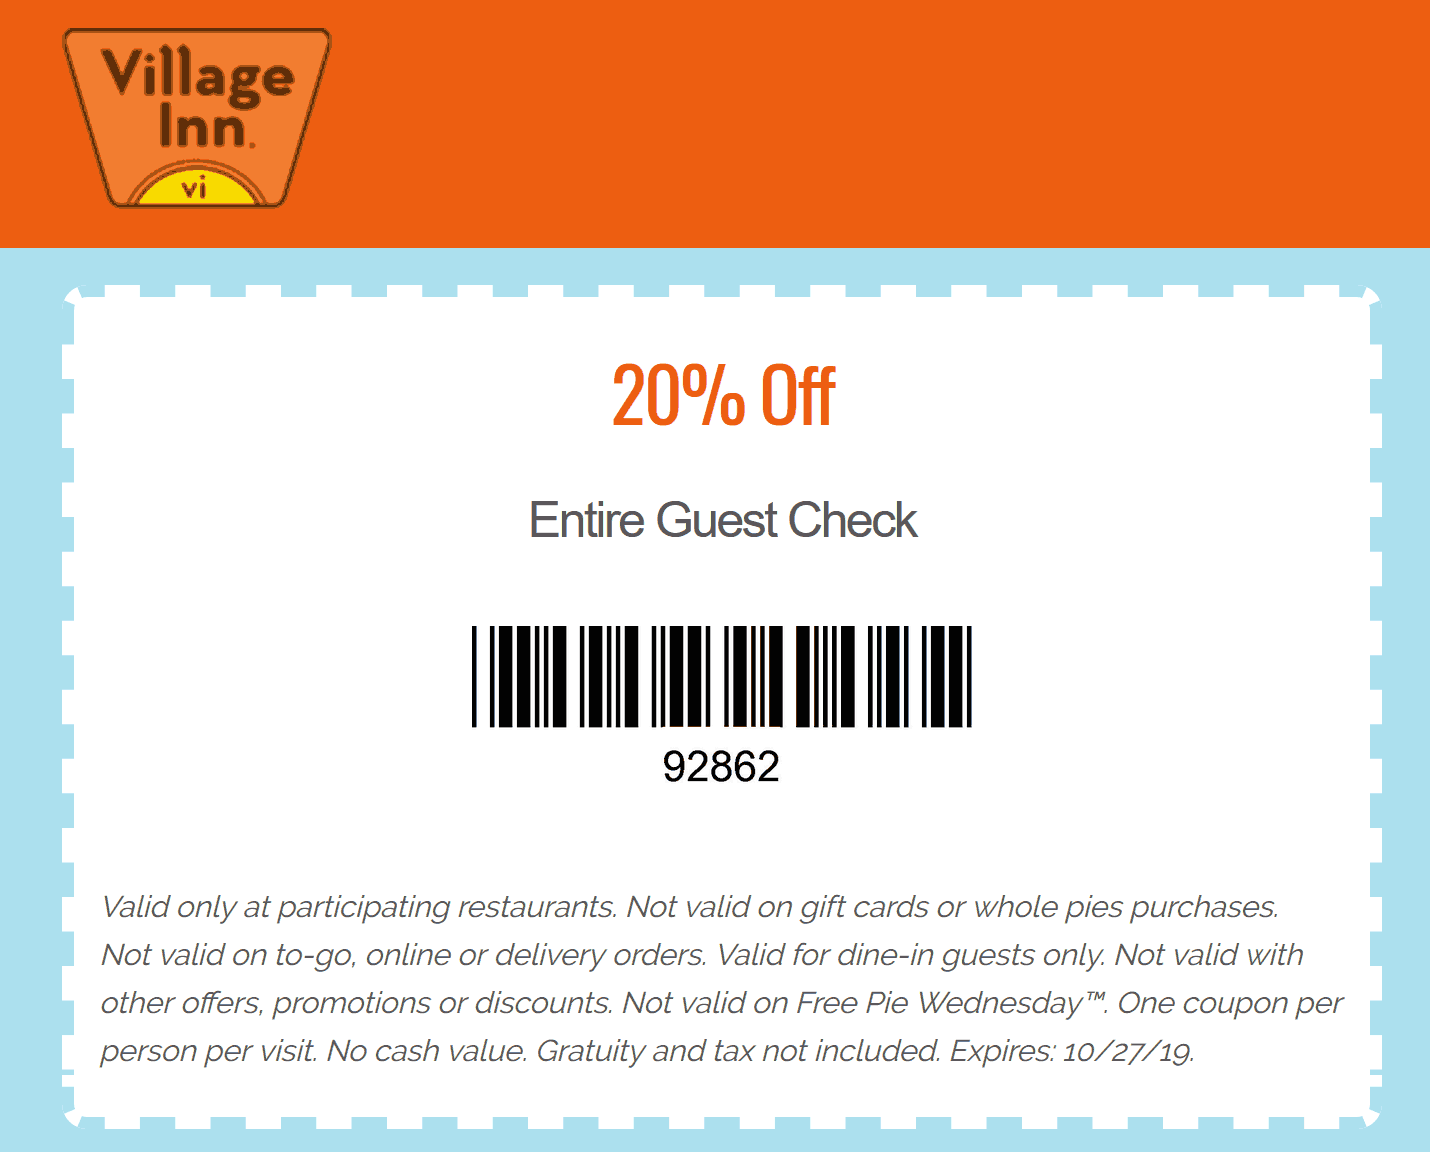 Village Inn coupons & promo code for [April 2021]